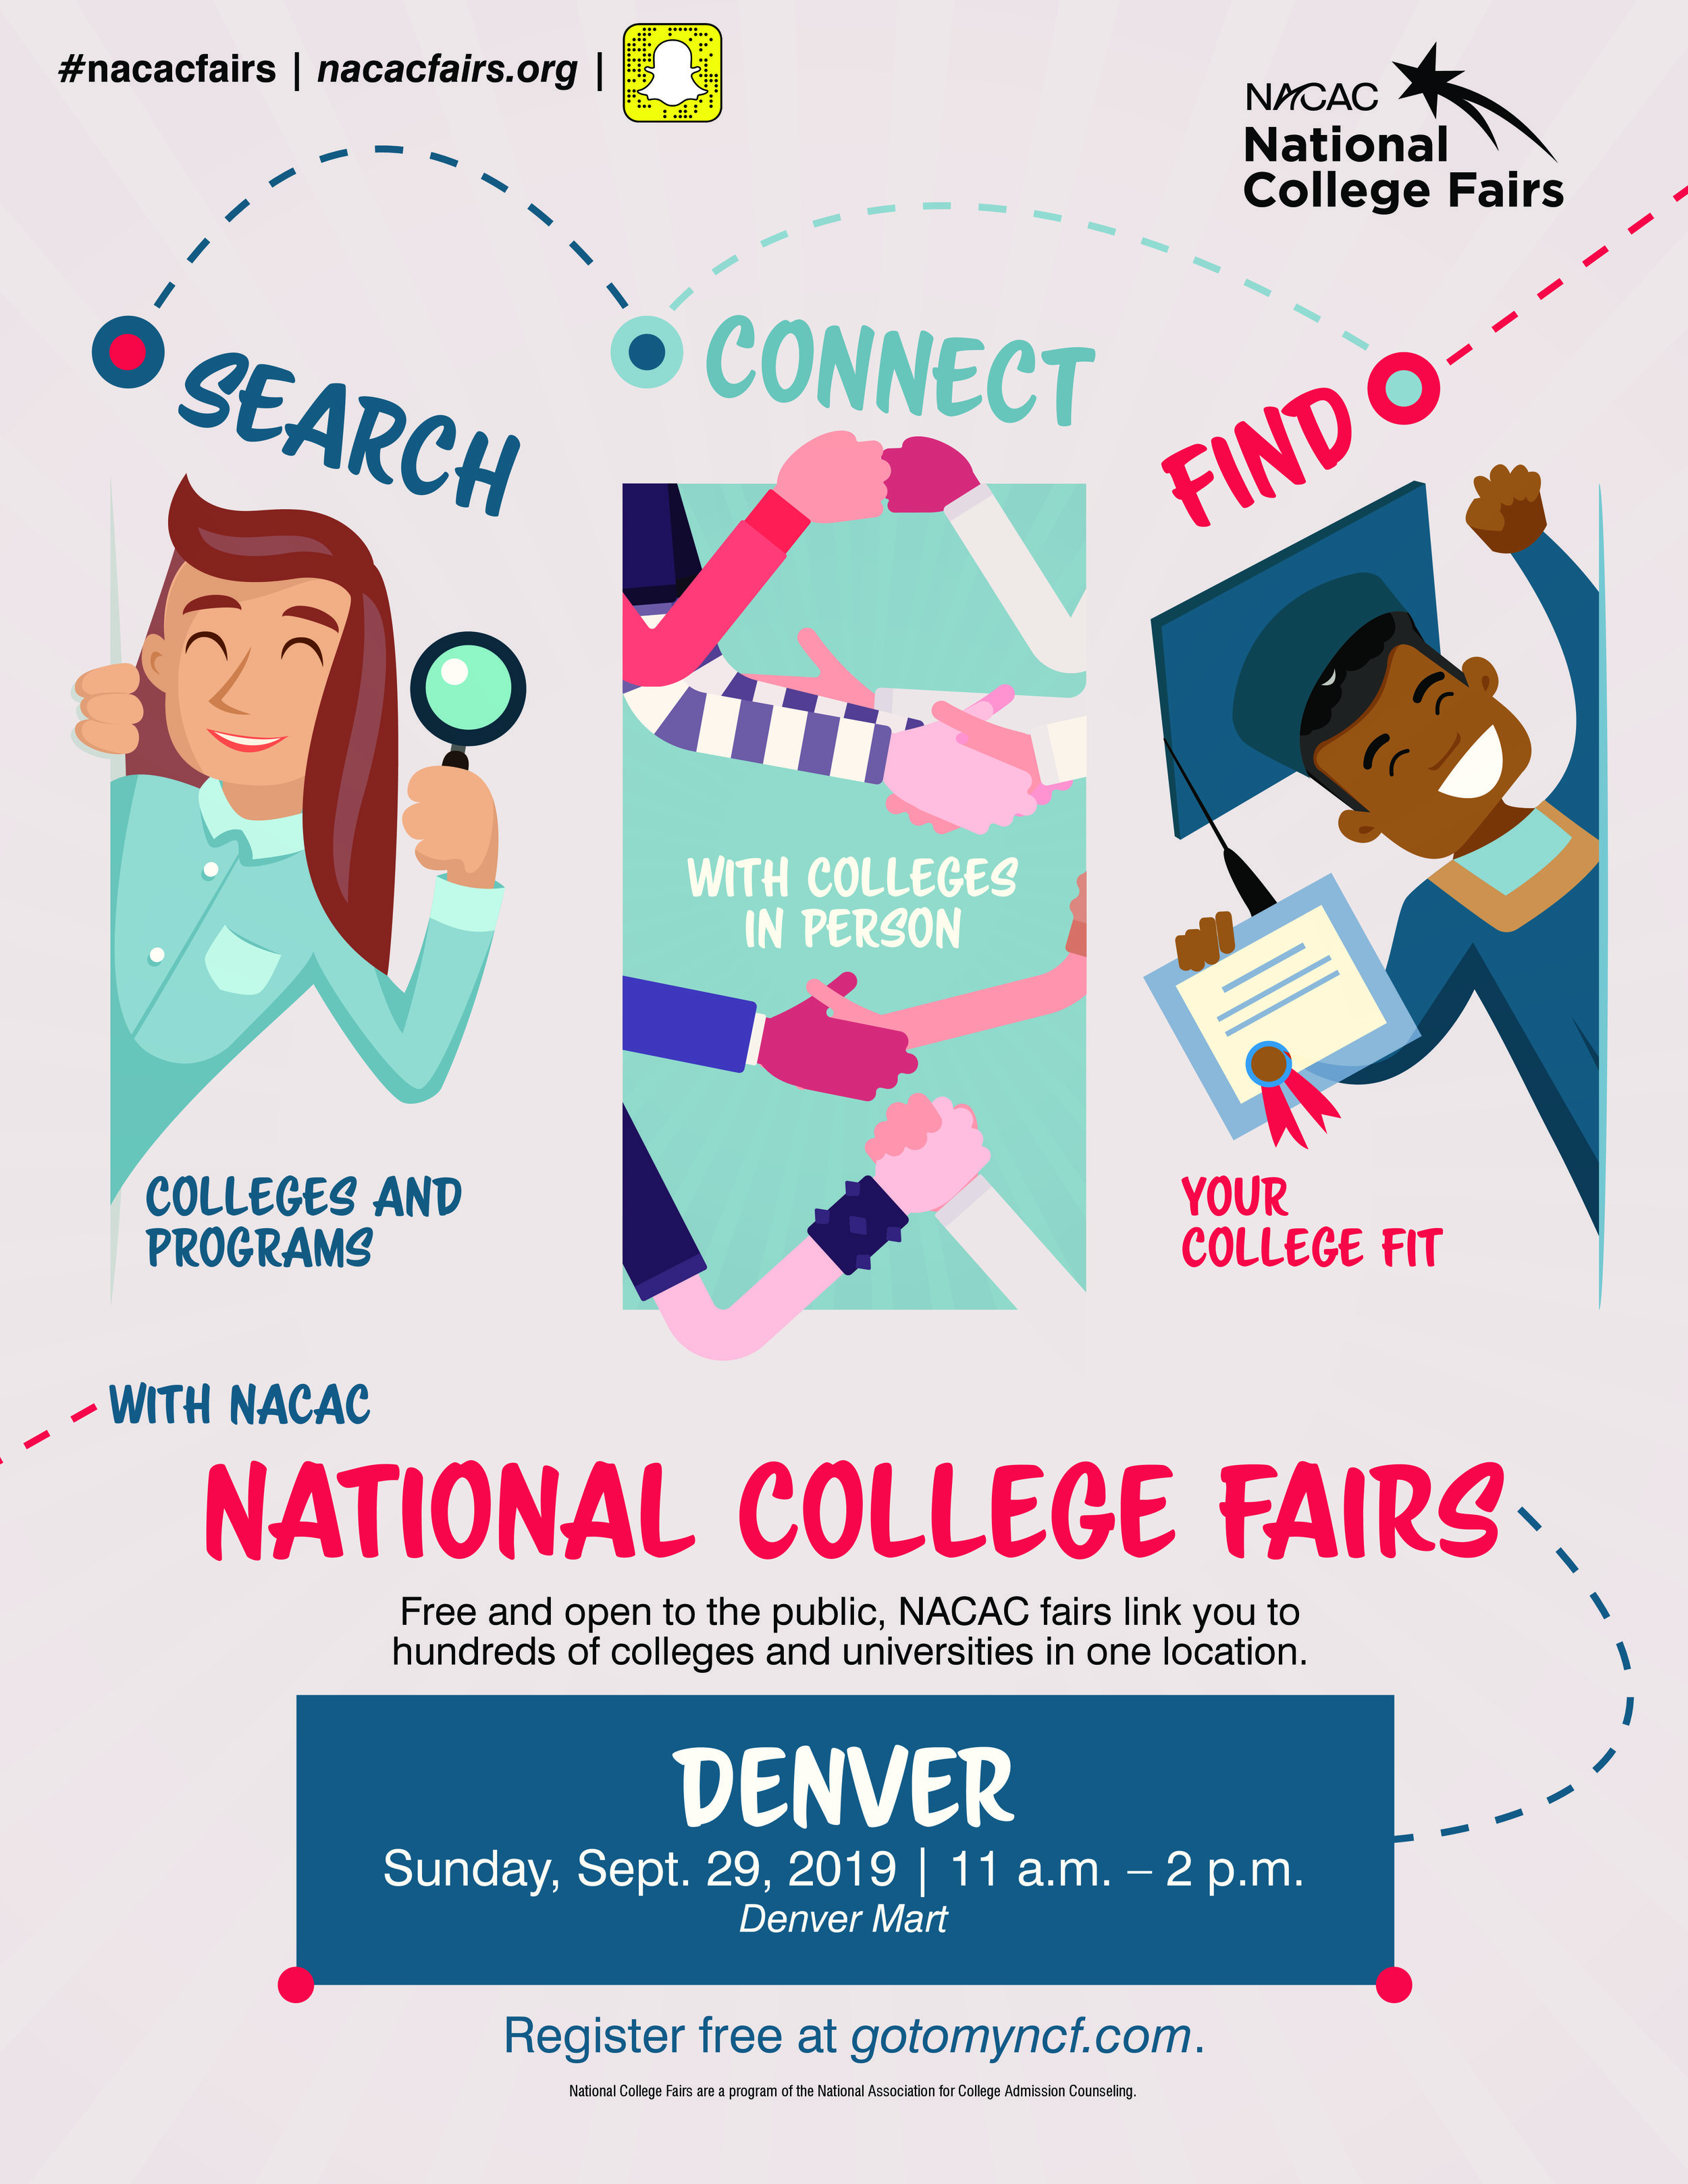 fall2019_ncf_co_denver_flyer-page-0.jpg